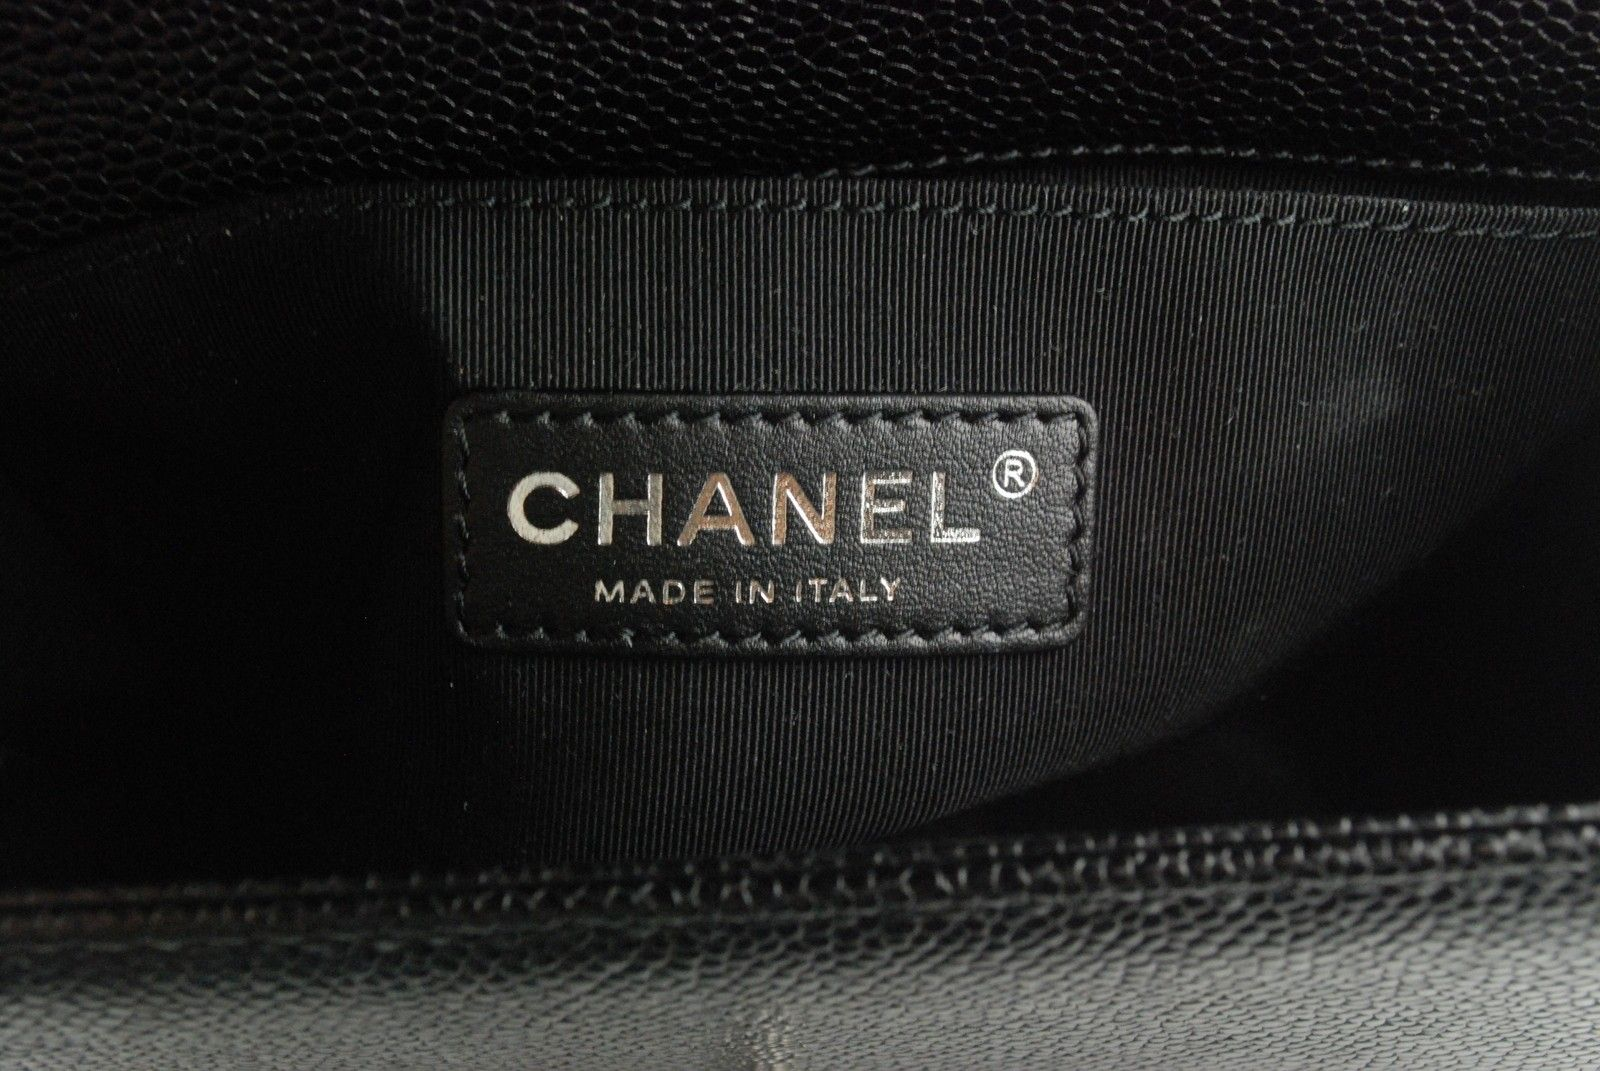 847799b5be74 Chanel Le Boy CAVIAR Leather Small Size Black Color Flap Bag 2014 Fall  (14B) Collection